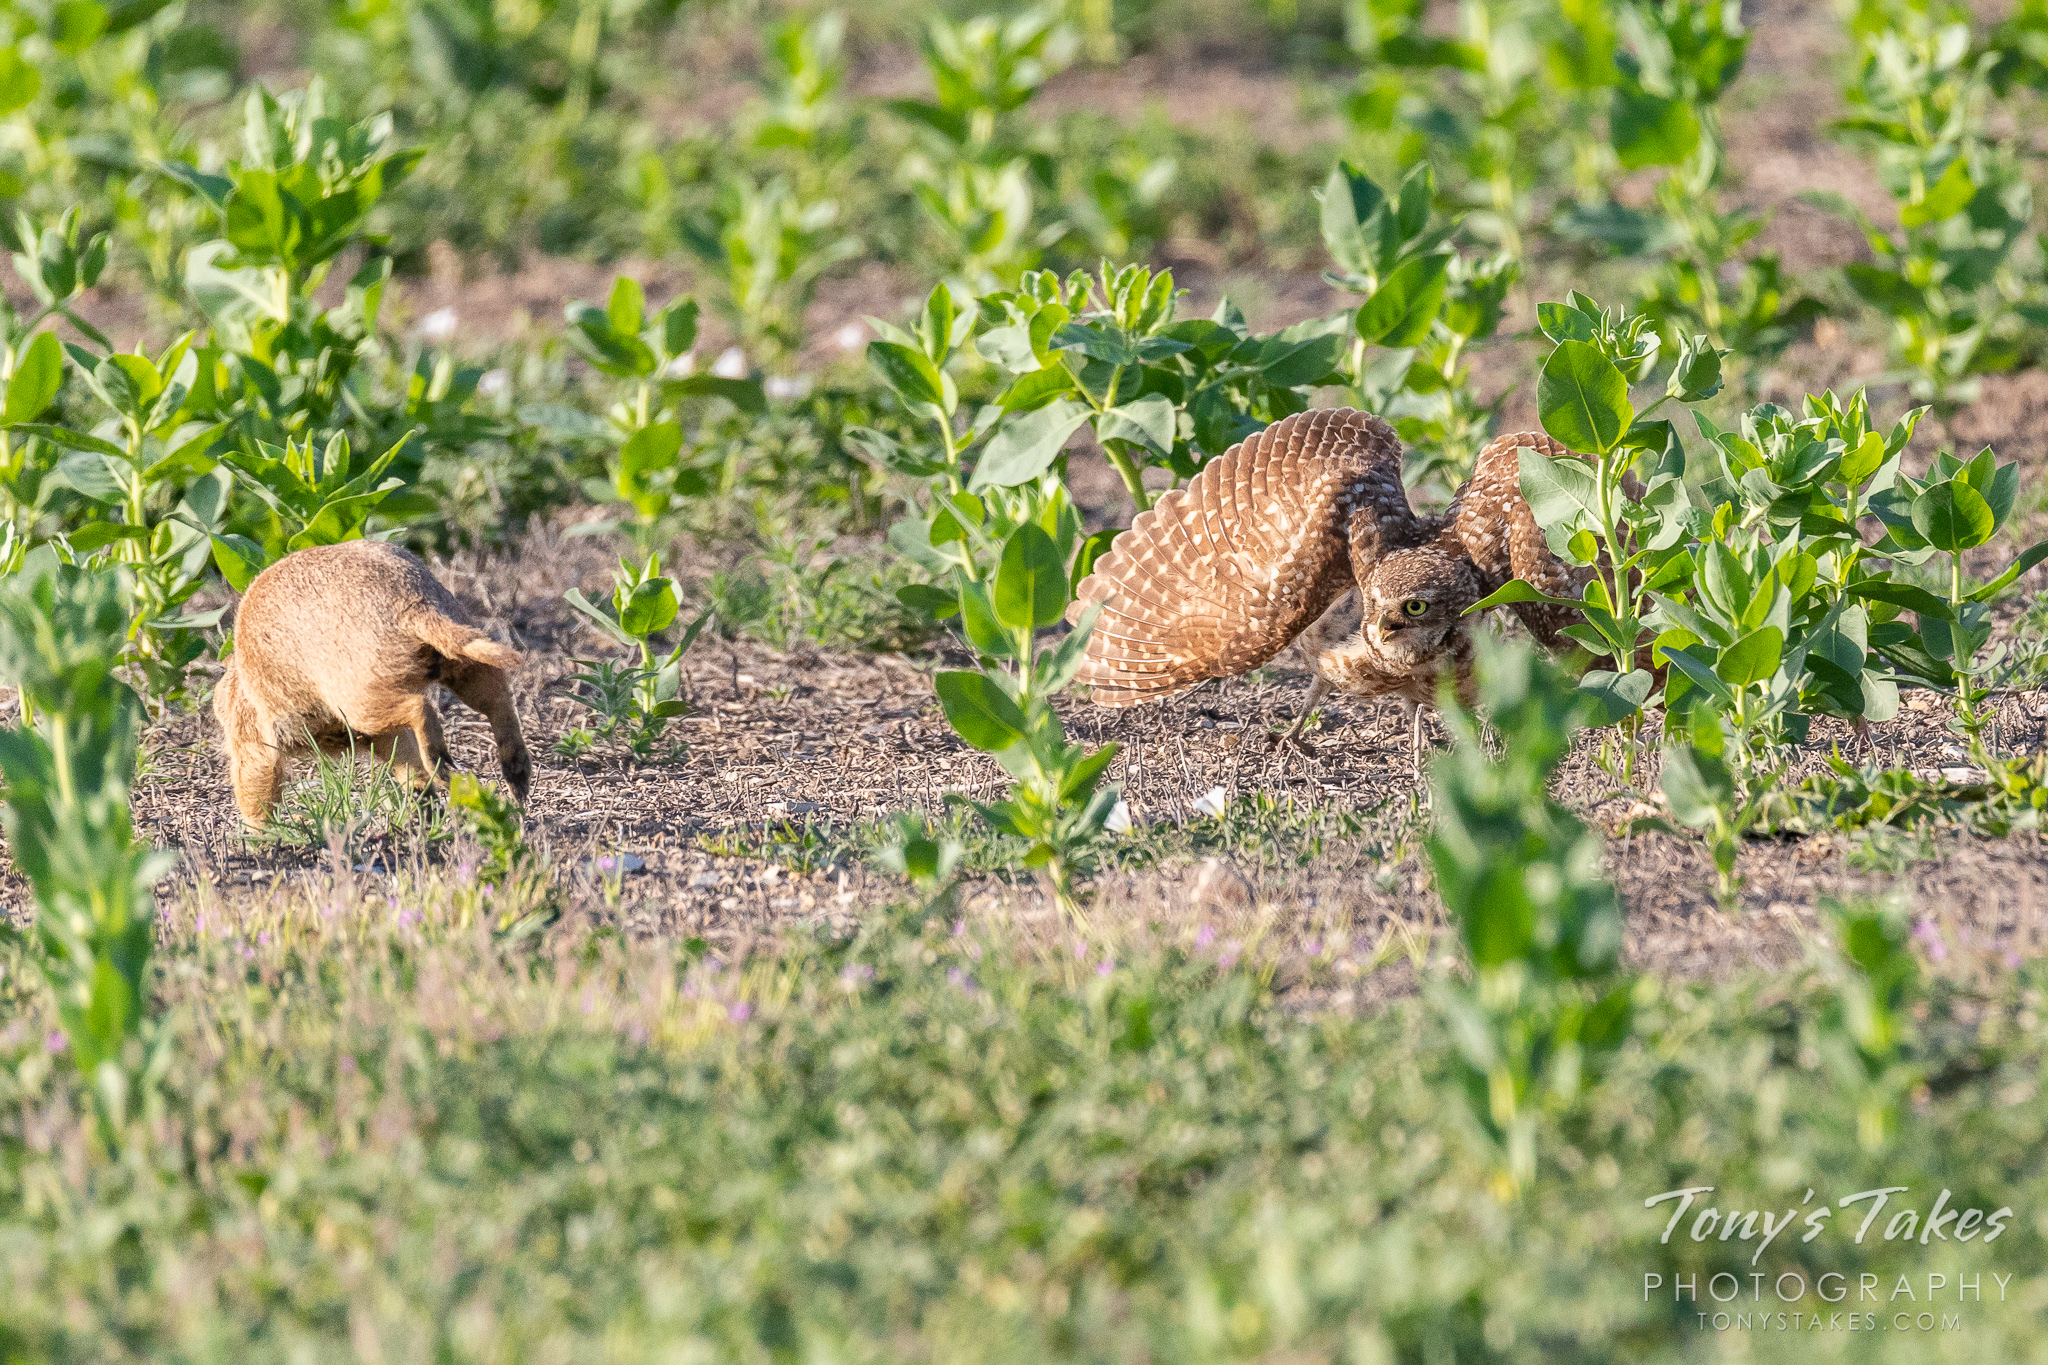 A burrowing owl warns off a prairie dog. (© Tony's Takes)